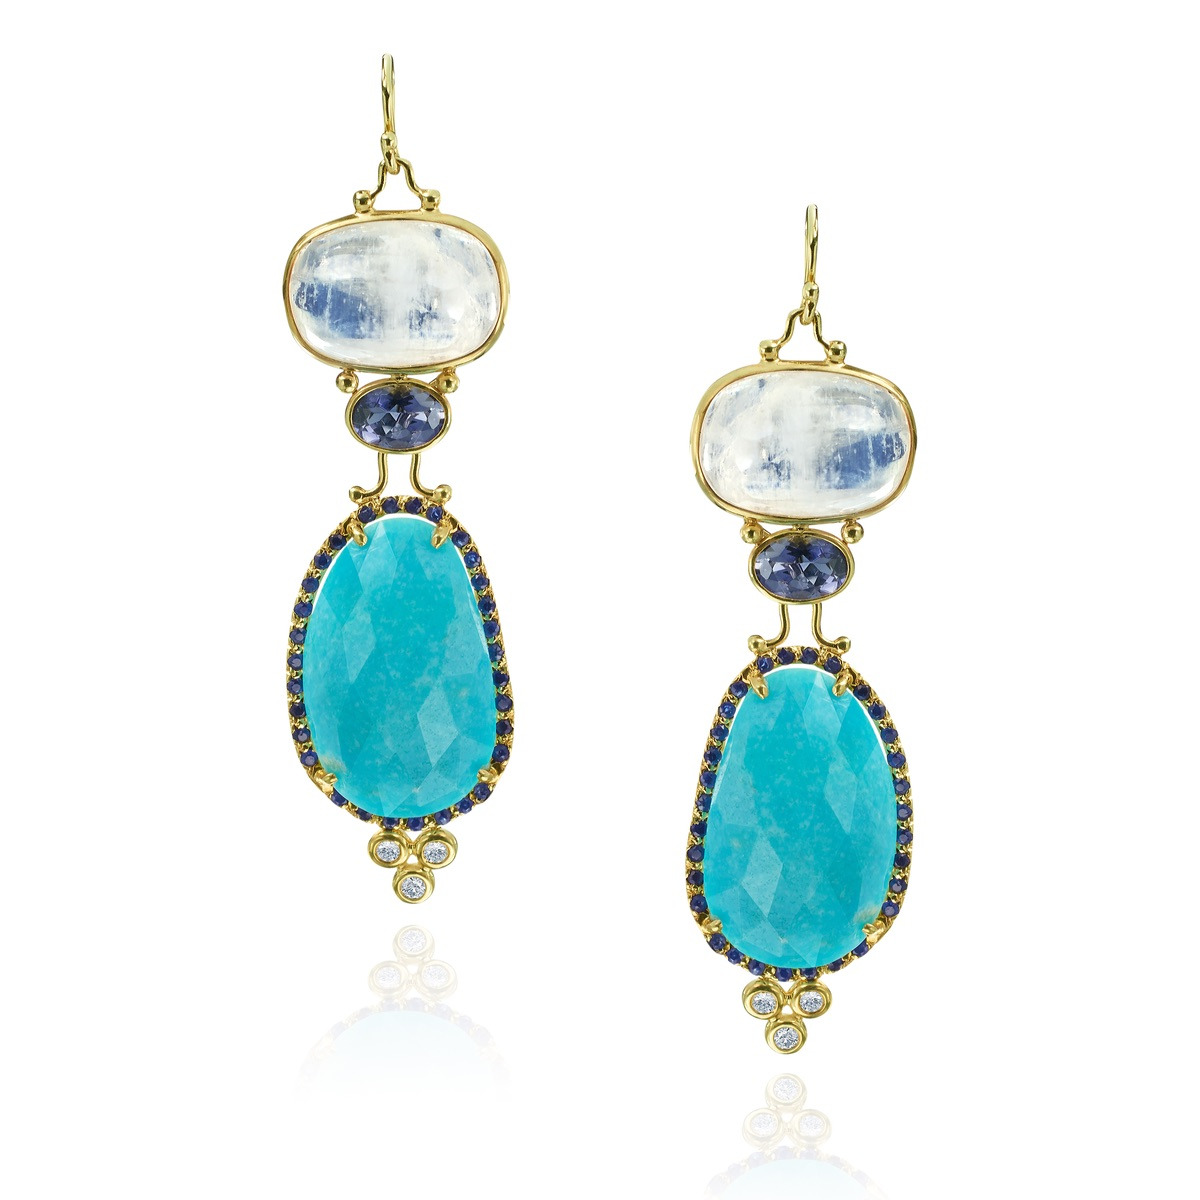 The Jewel - Mazza - Lookbook - Blue and Gold Drop Earrings